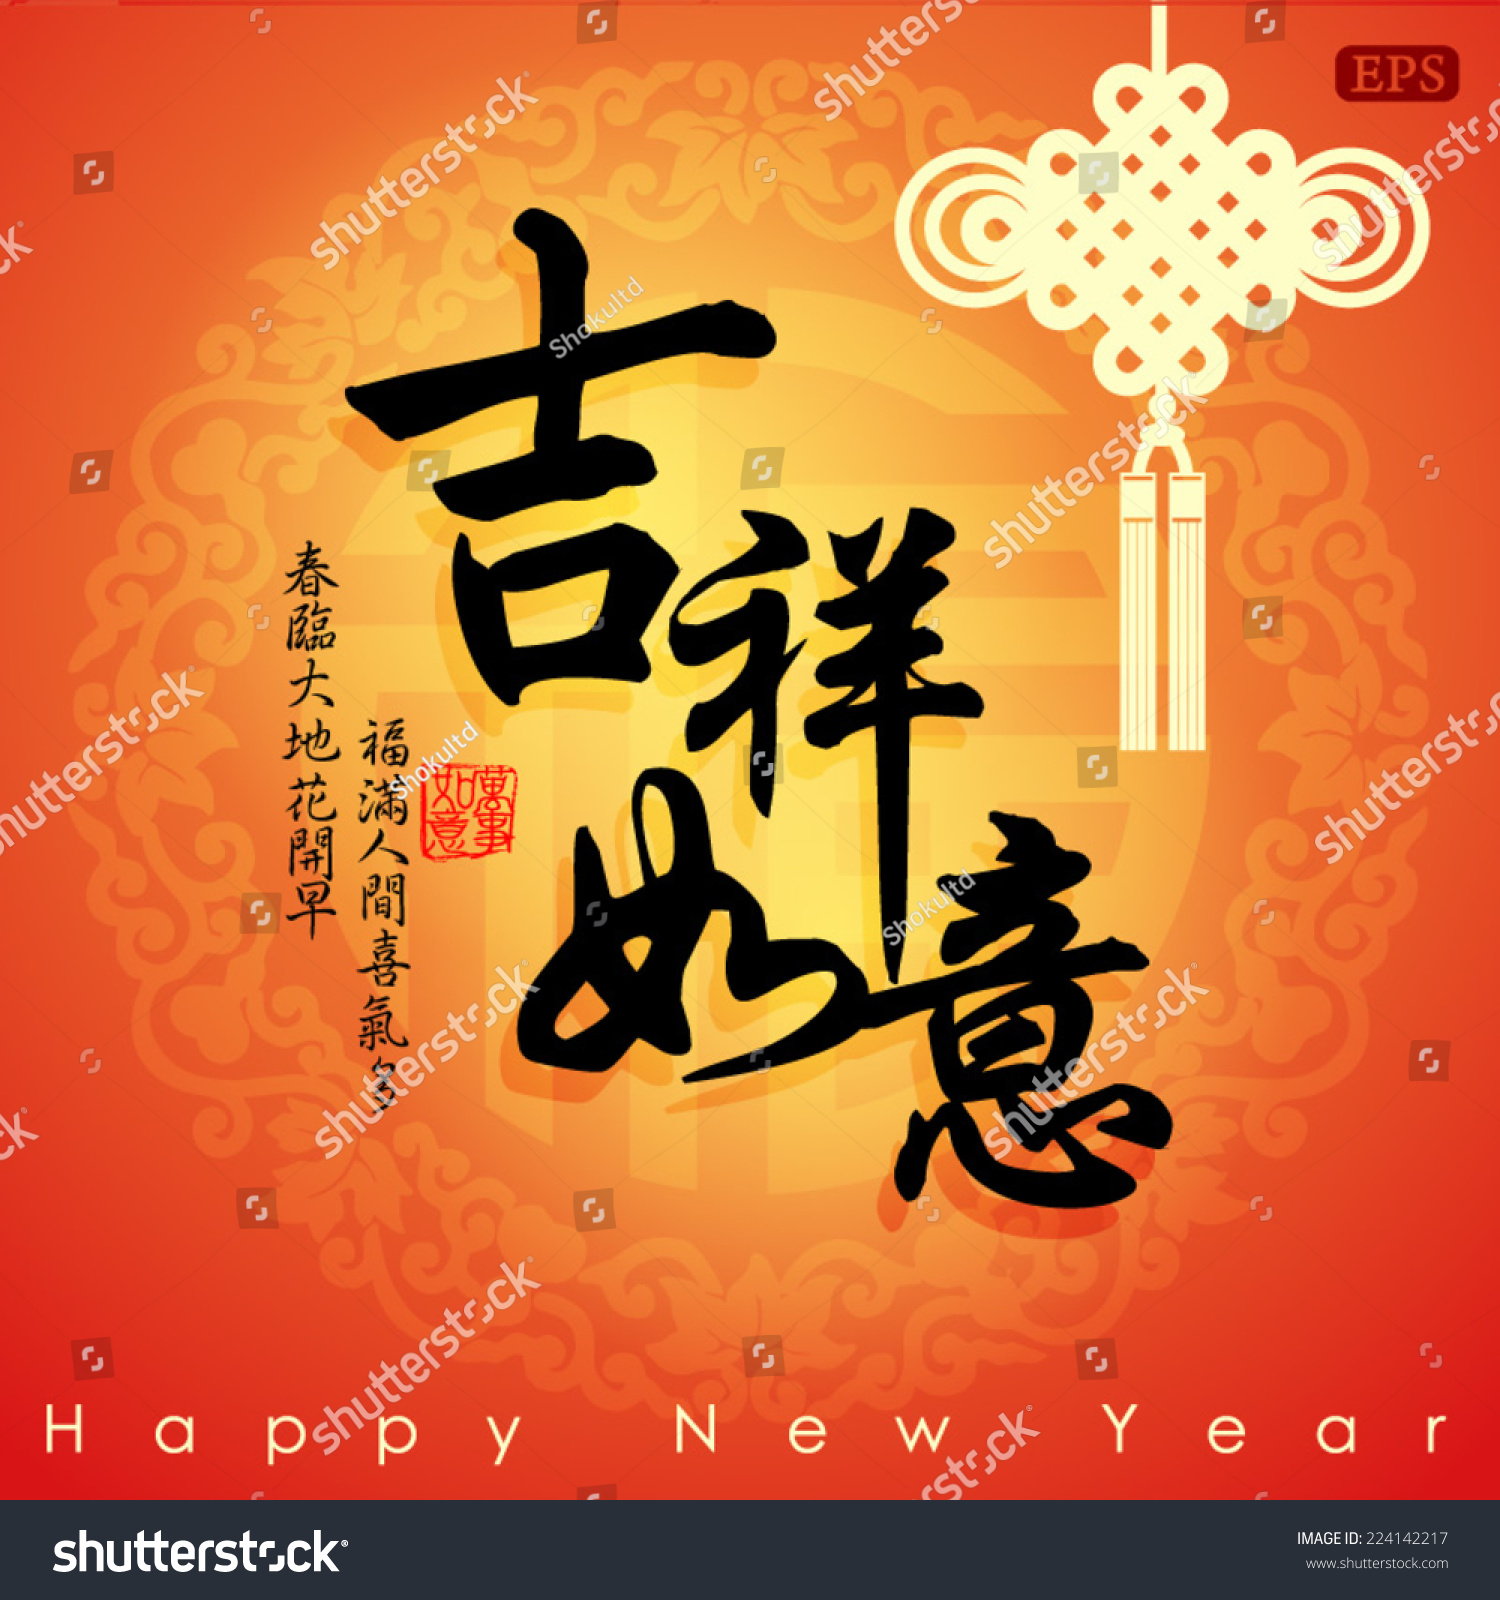 Chinese new year greeting card designtranslation stock vector chinese new year greeting card designanslation all the best anslation of small kristyandbryce Image collections